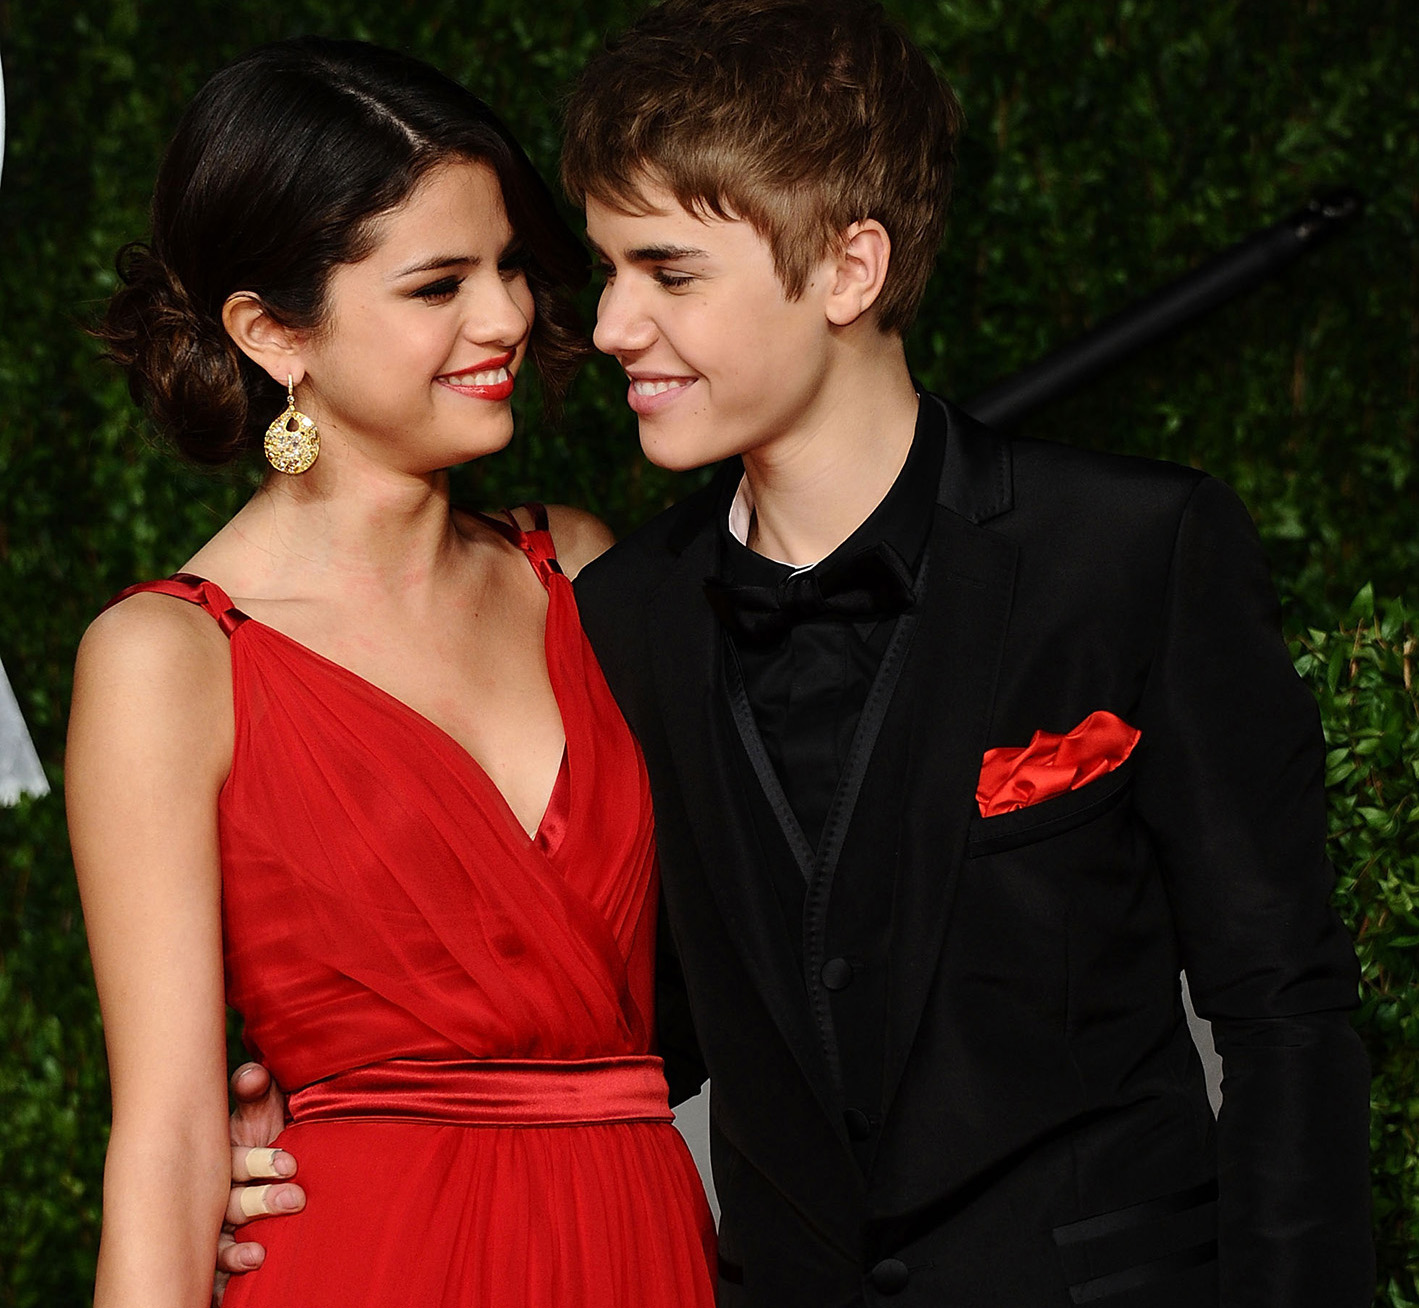 Is justin bieber dating selena gomez yes or no